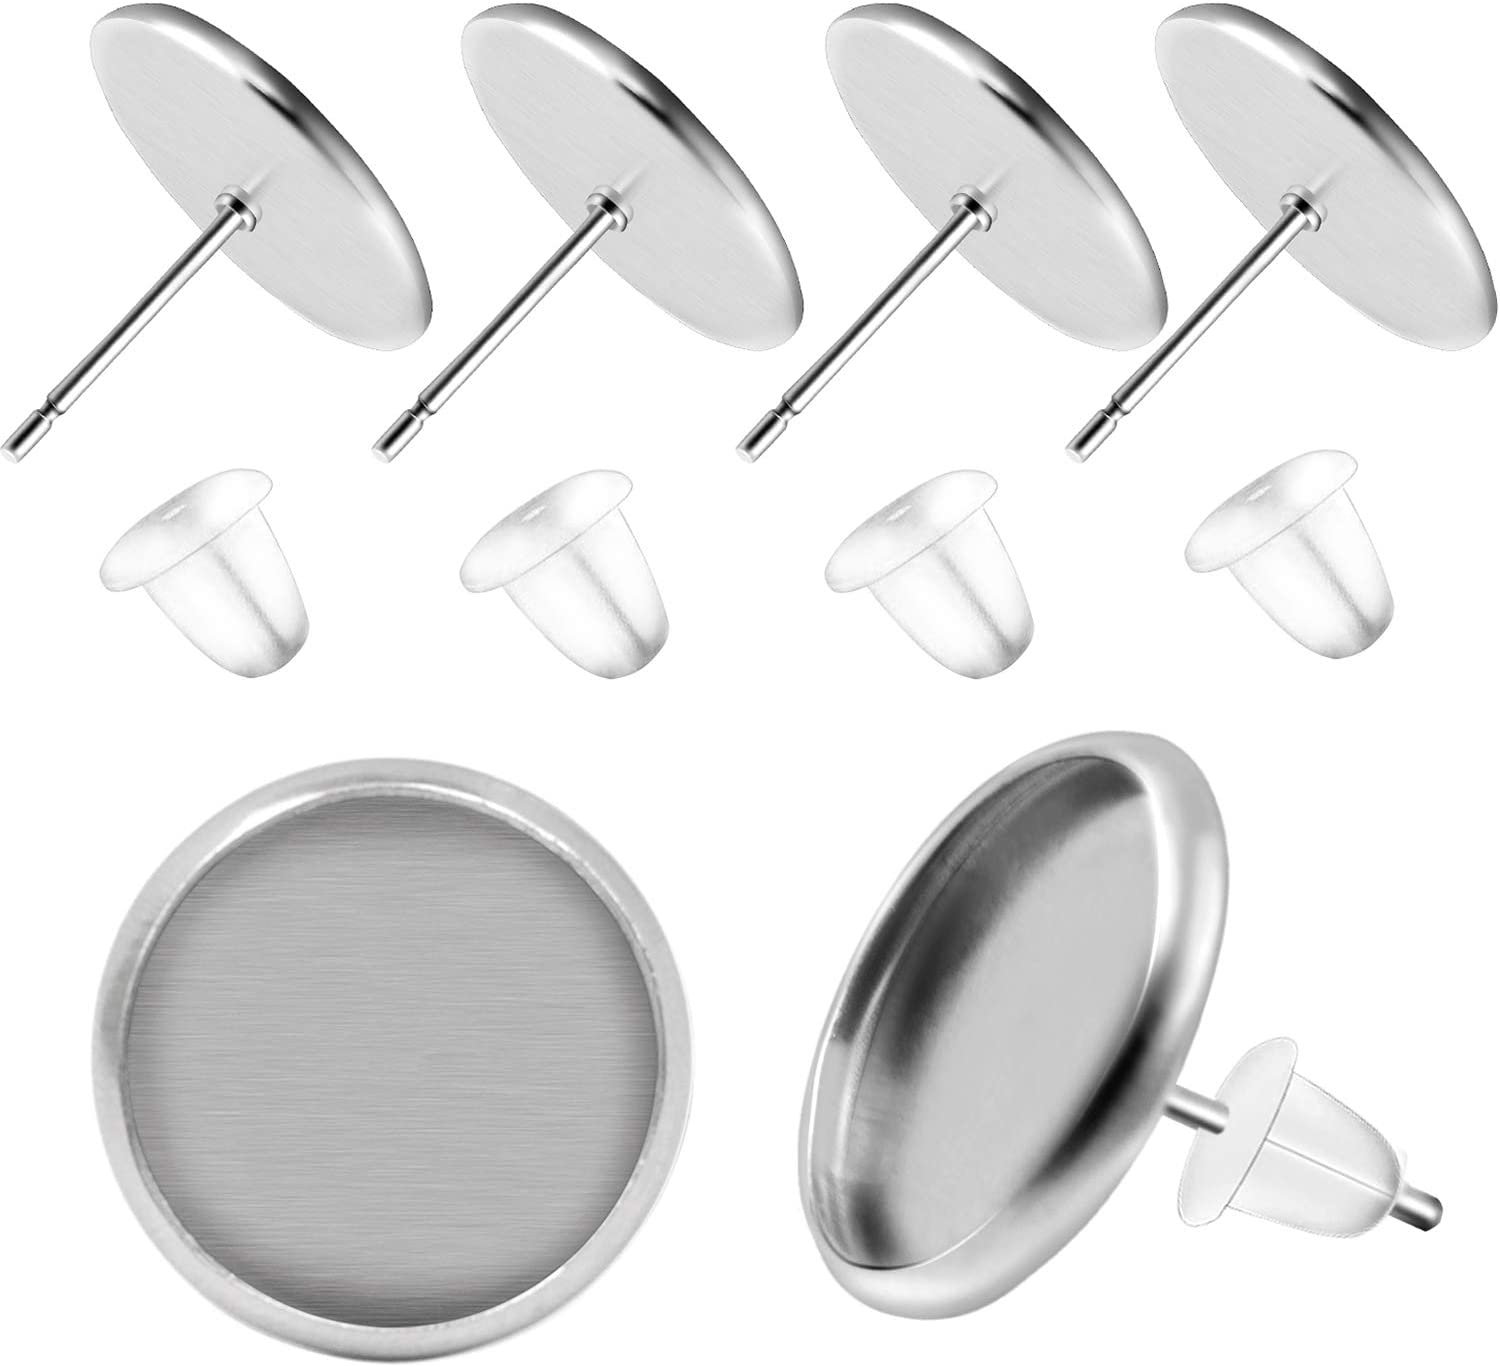 BronaGrand 50 Pieces Stainless Steel Stud Silver Earring Cabochon Setting Post Cup for 12mm and 50 Pieces Bullet Clutch Earrings Safety Backs